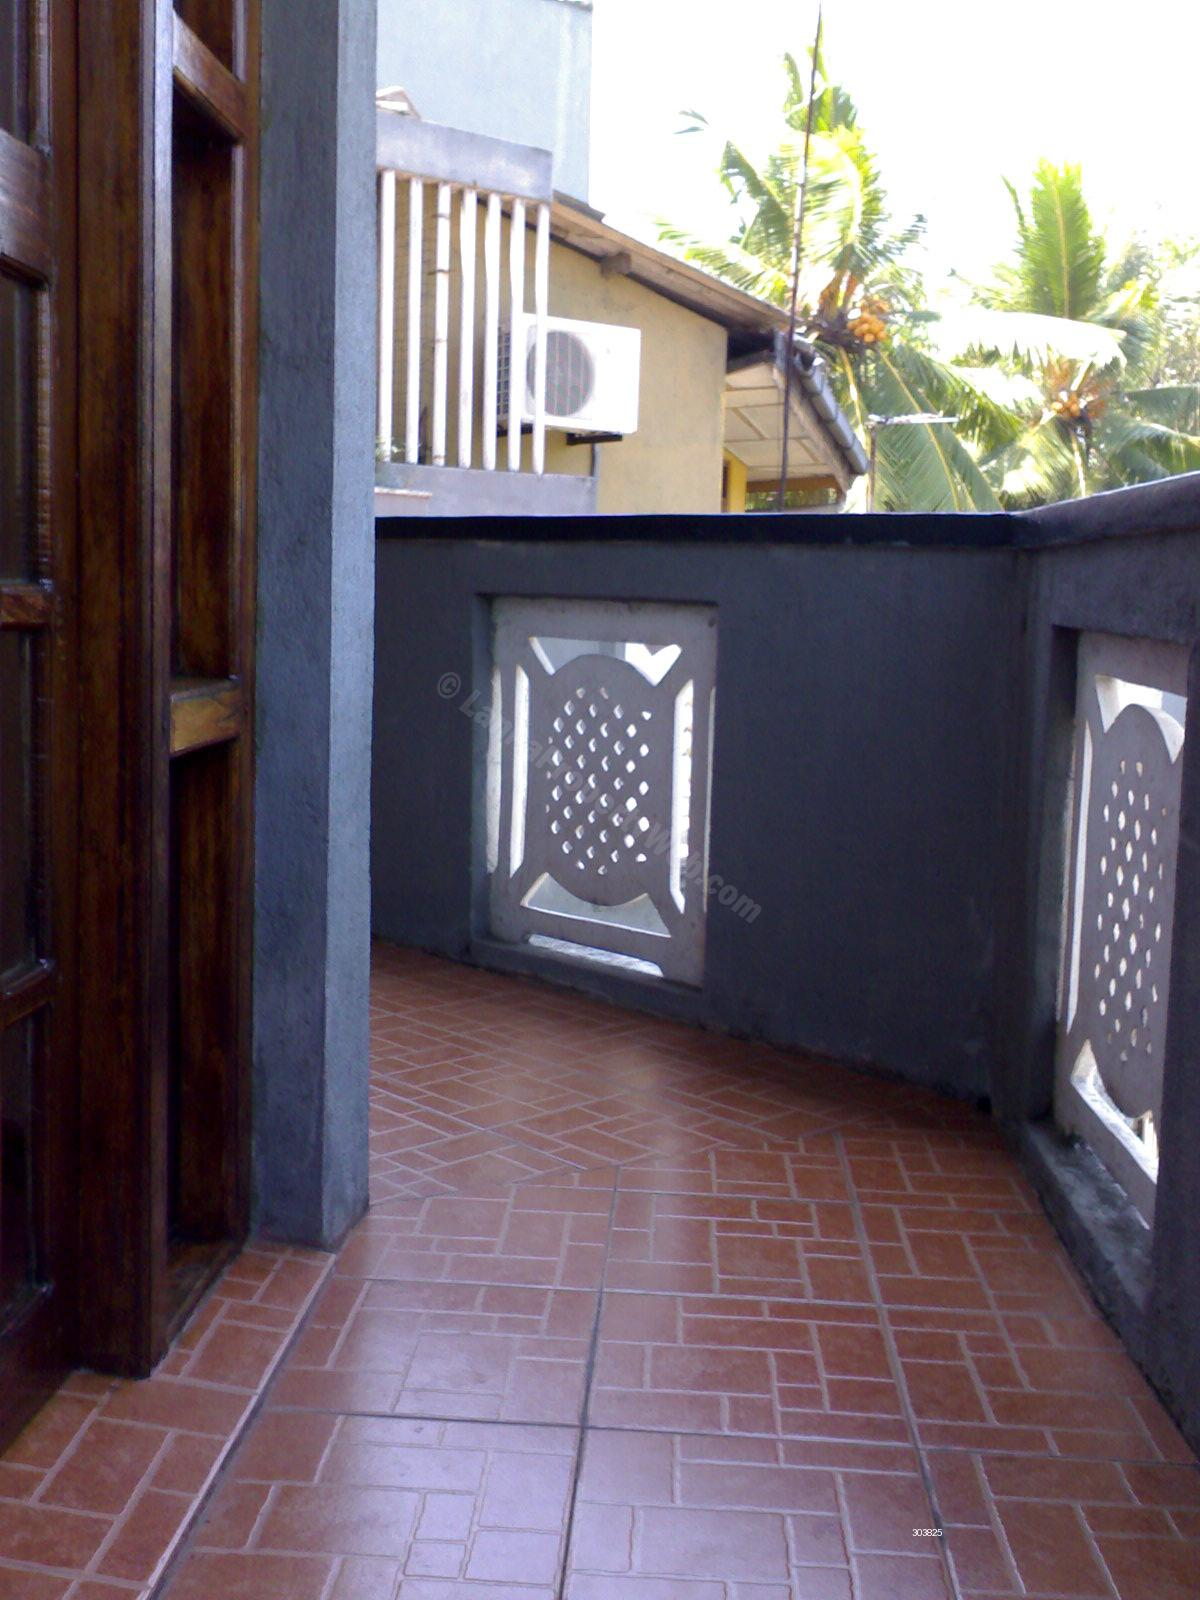 House for rent in Dehiwala - Modern 2 bedroom house for rent in Dehiwala